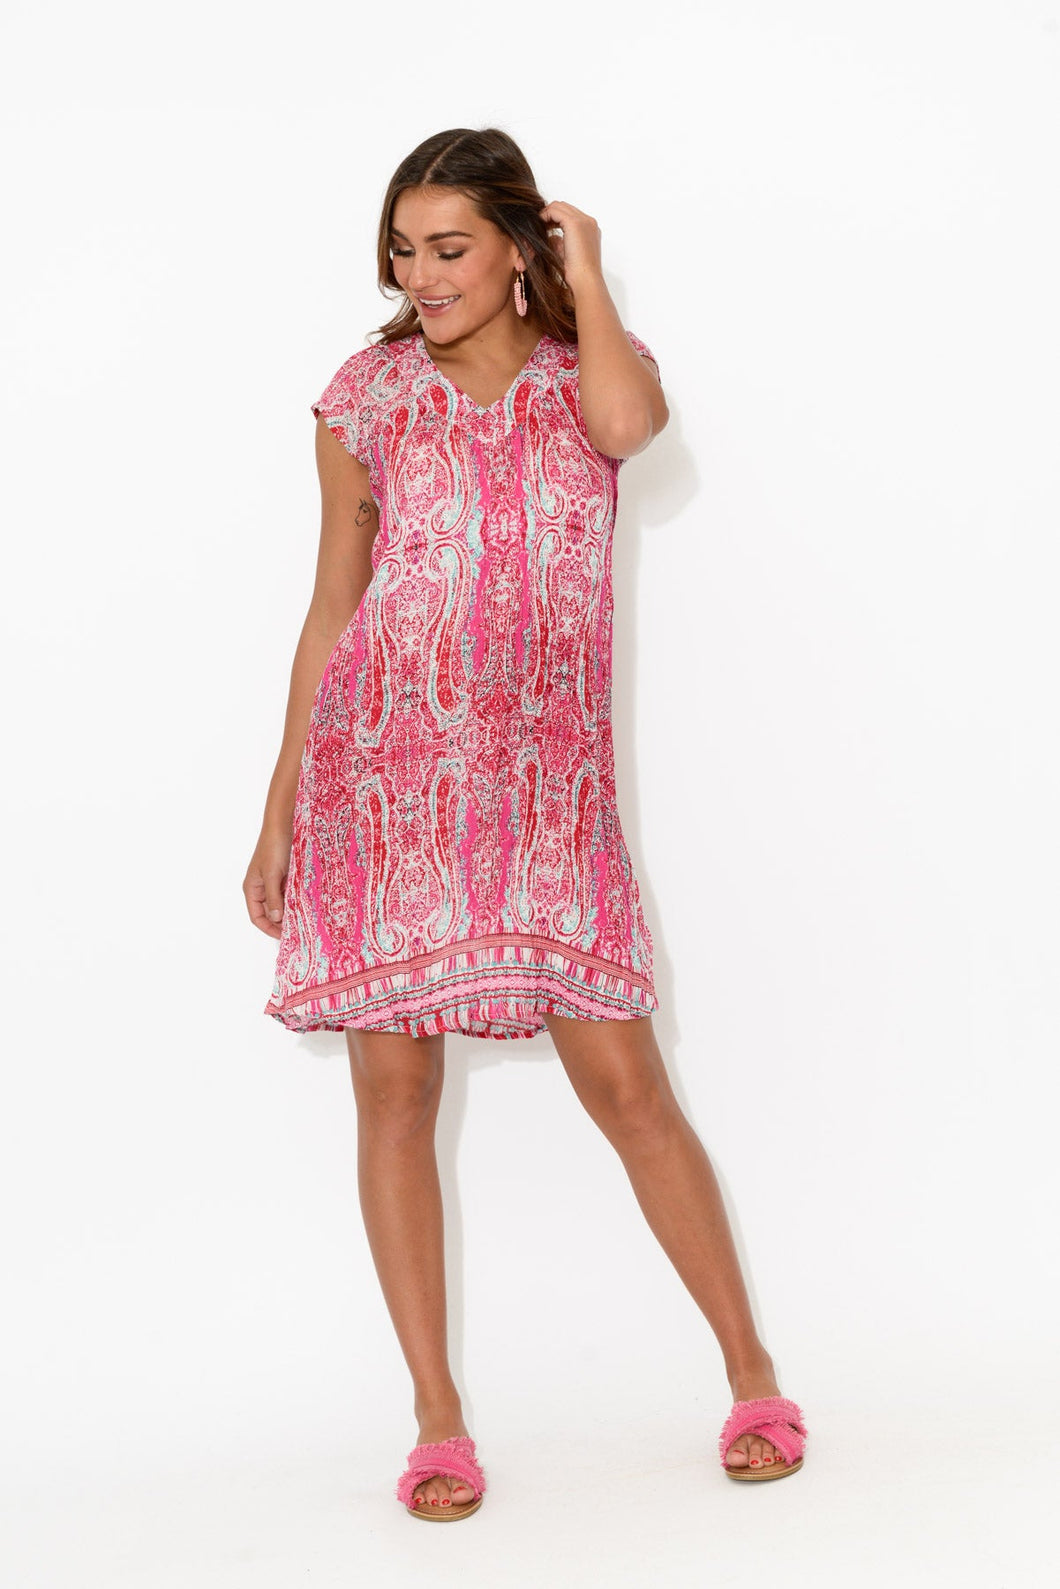 Elliot Pink Crinkle Cap Dress - One Summer - Blue Bungalow Online